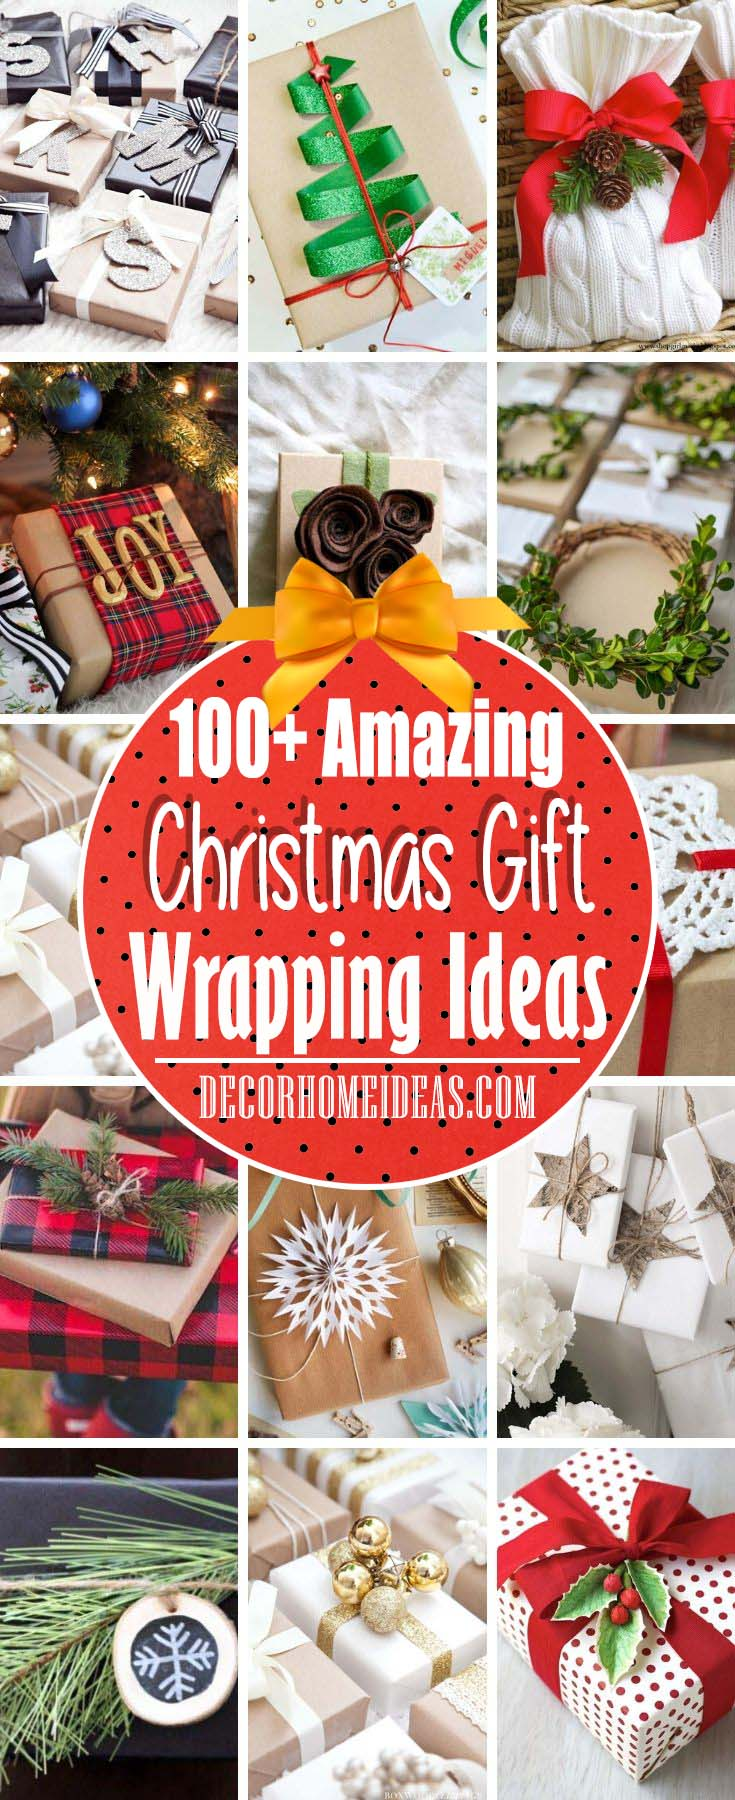 Best Christmas Gift Wrapping Ideas #Christmas #gift #wrapping #decorhomeideas